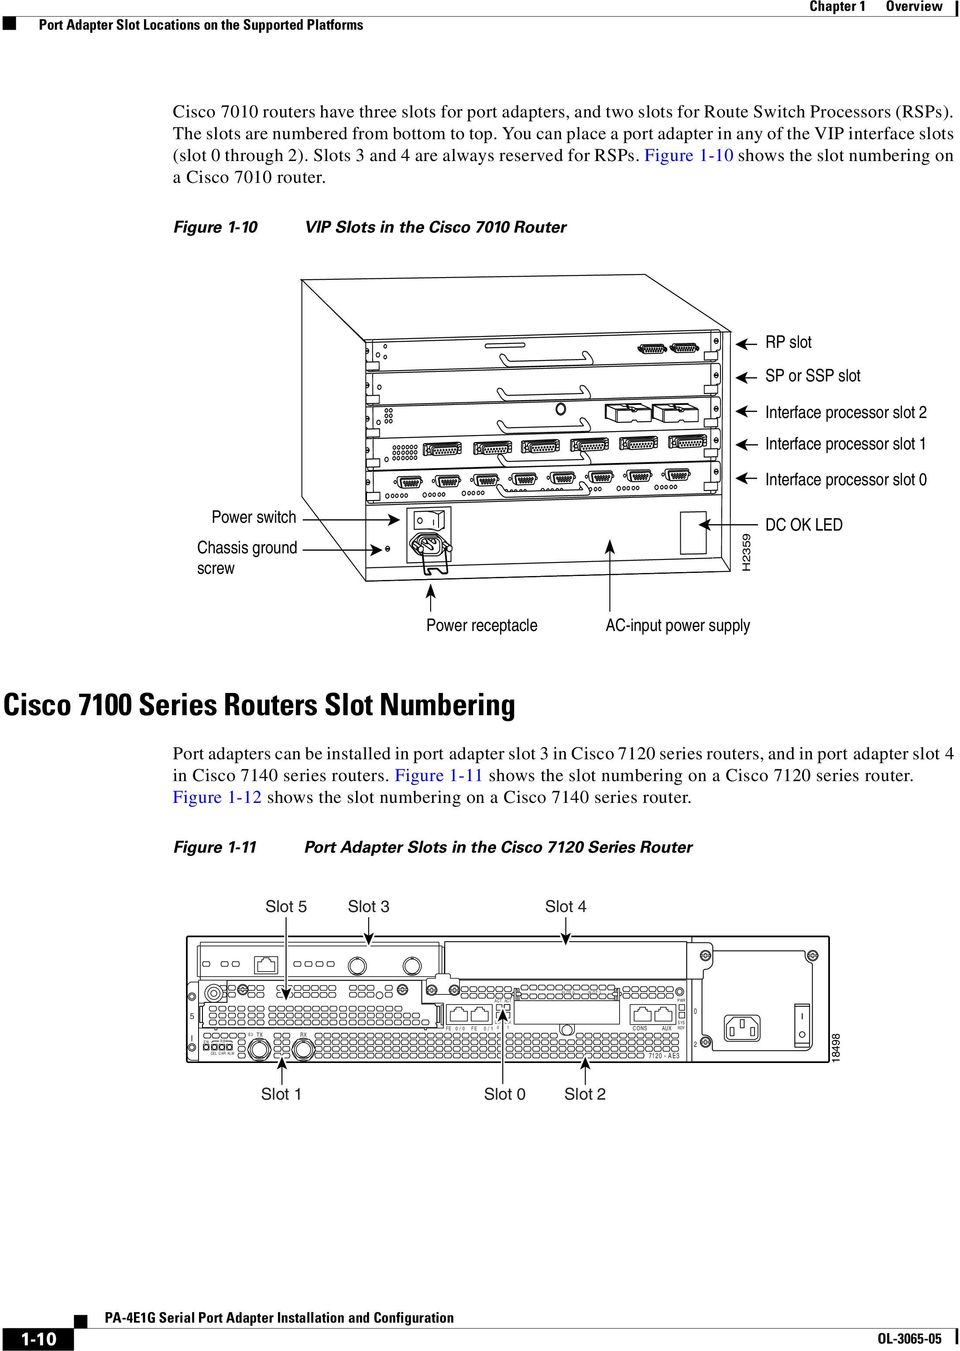 Figure - shows the slot numbering on a Cisco 7 router.